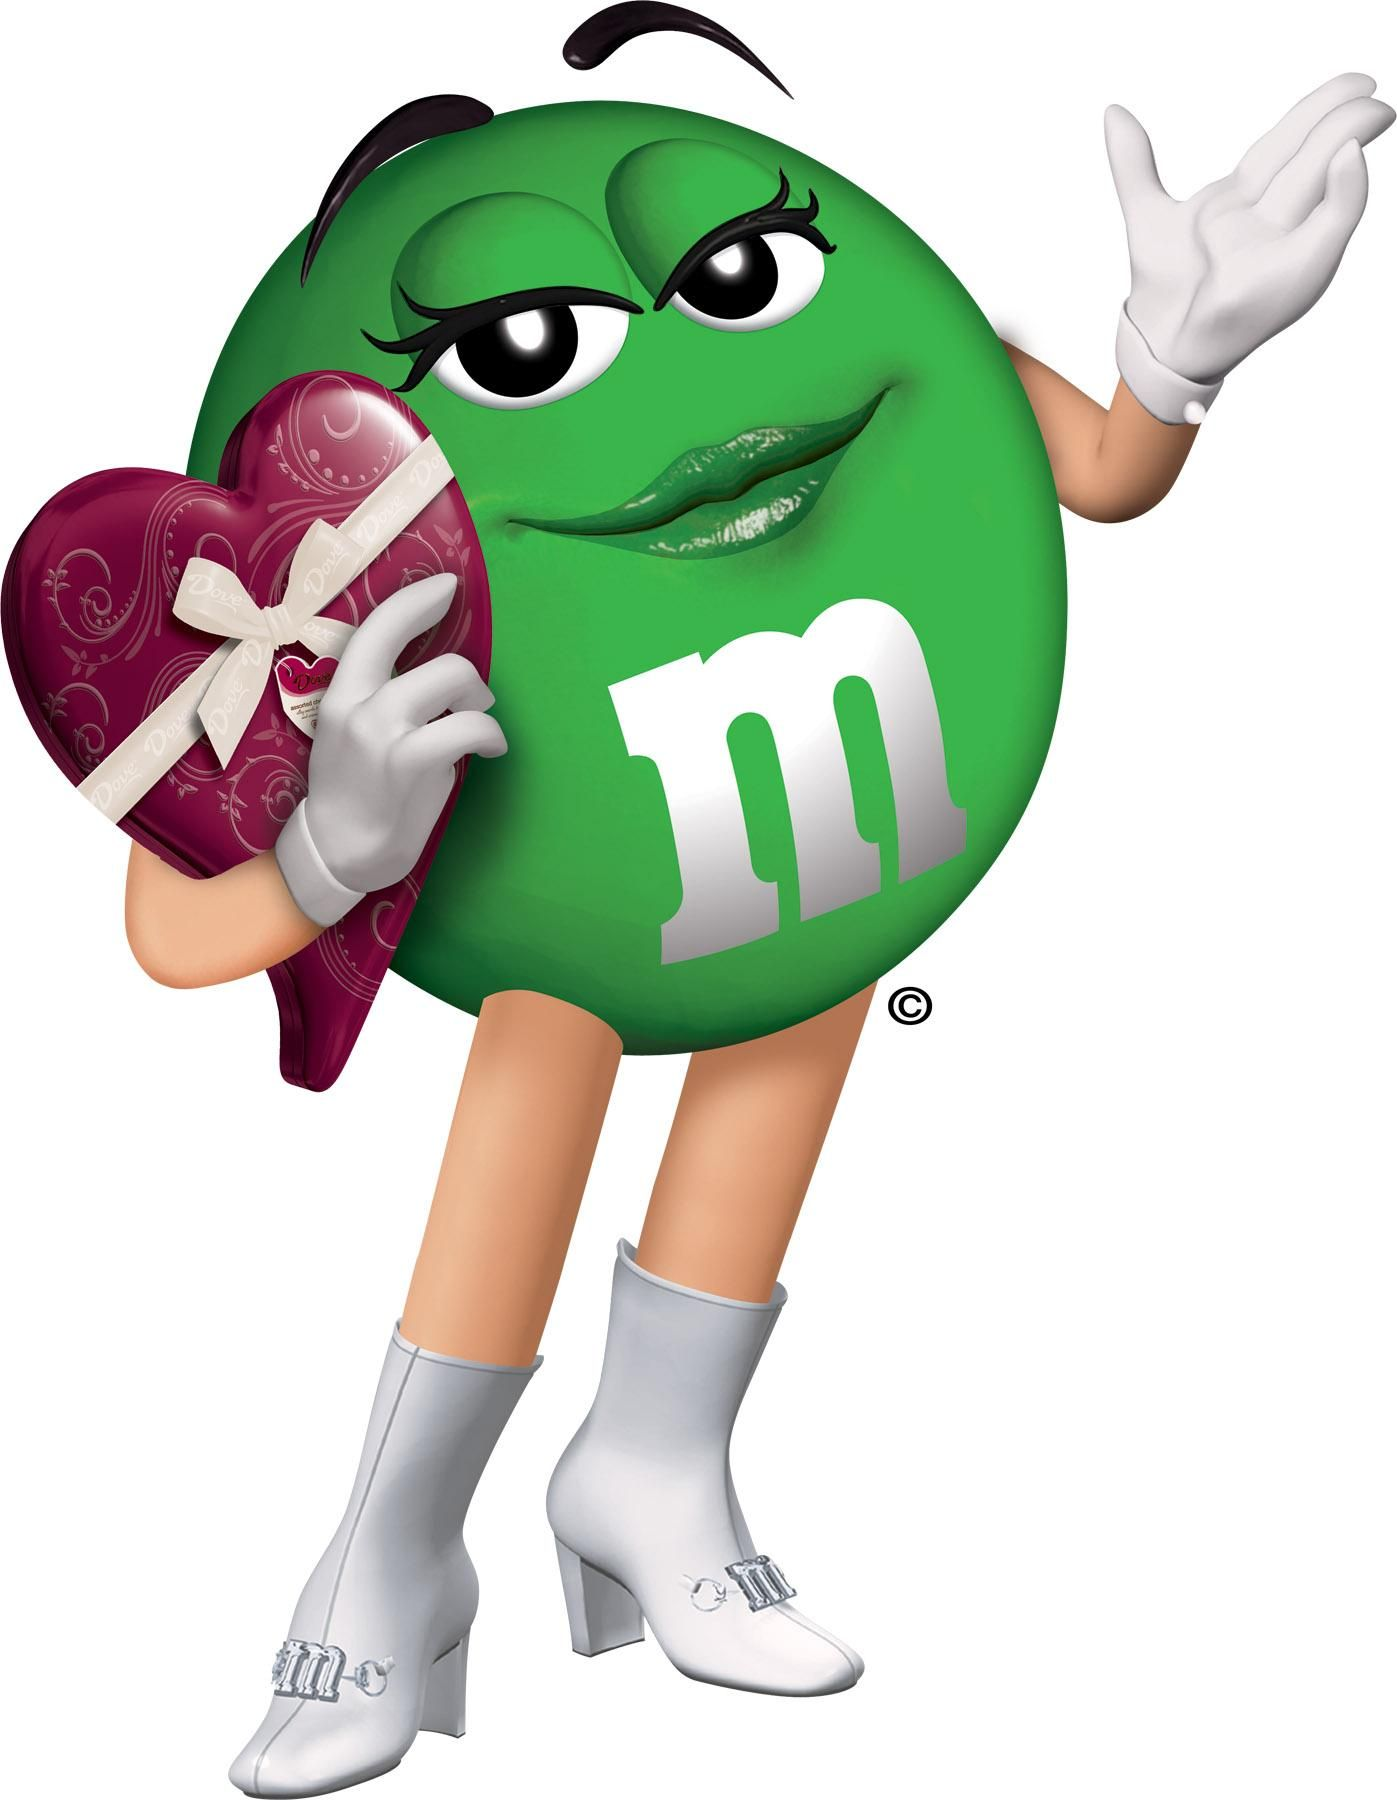 M&m candy clipart free graphic black and white m&m pictures of characters - Google Search | M &Ms ... graphic black and white